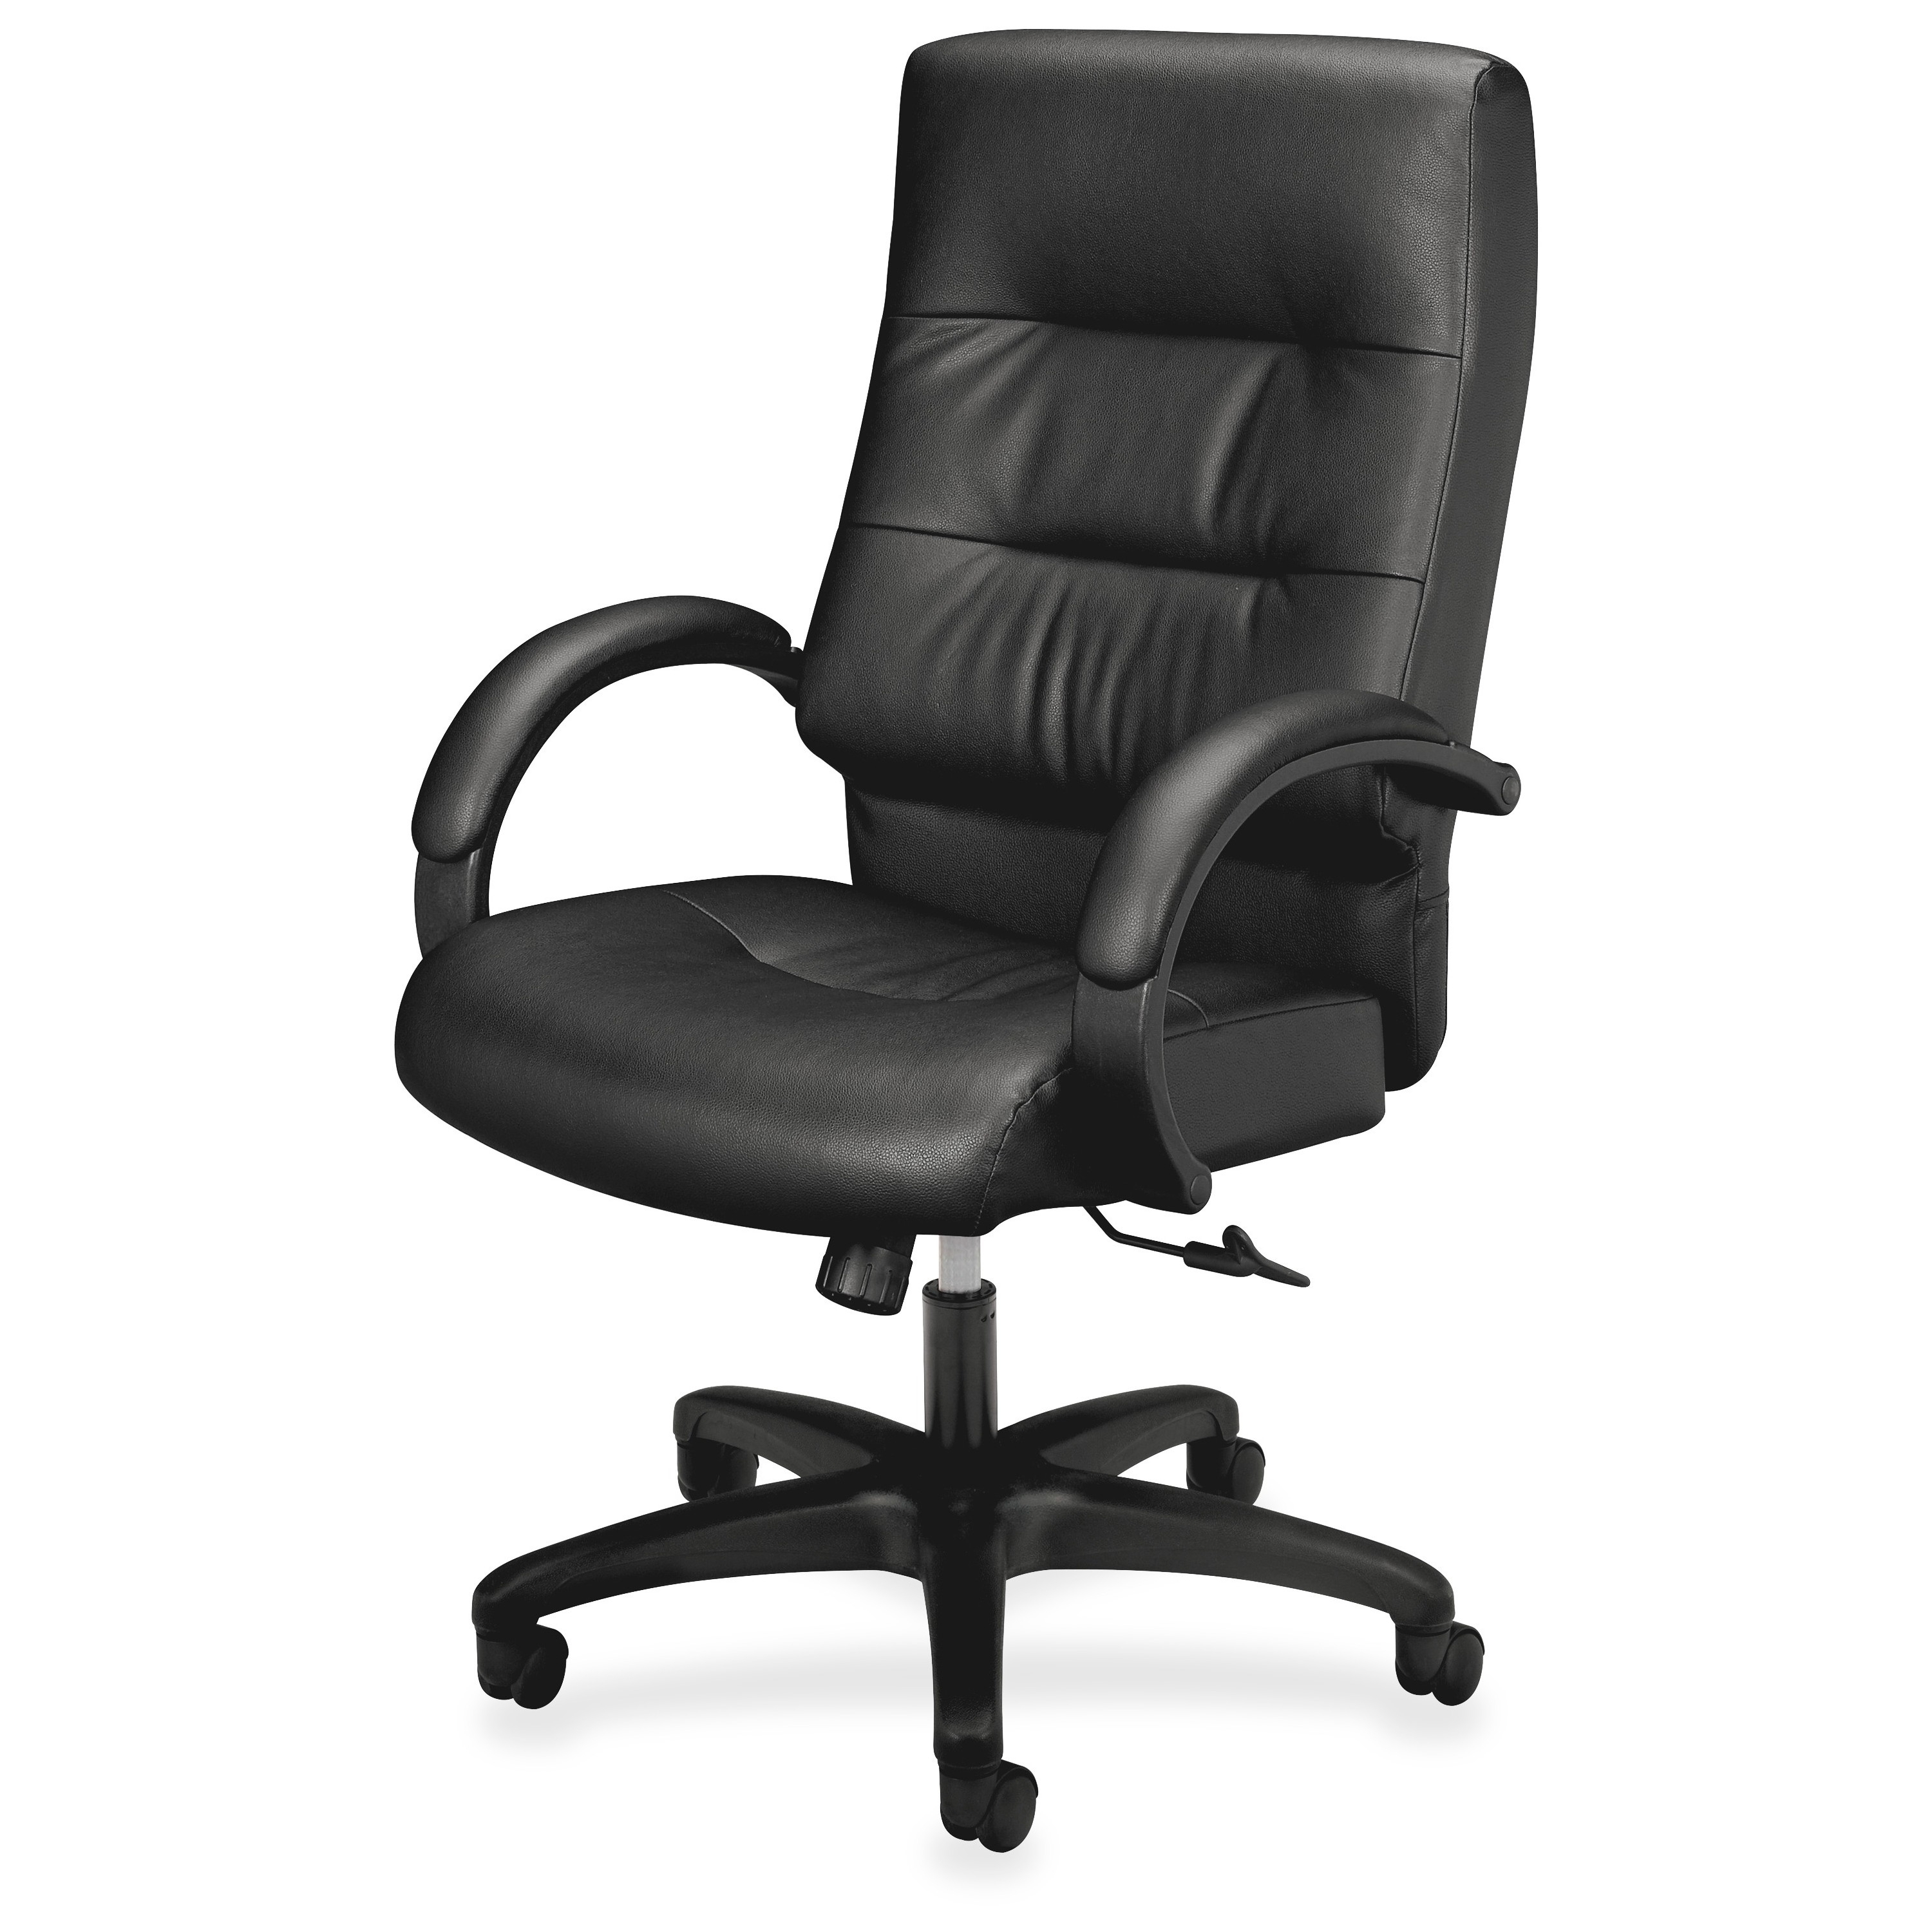 Best And Newest Bsxvl691Sb11 Basyxhon Hvl691 Executive High Back Chair For Hon Executive Office Chairs (View 15 of 20)